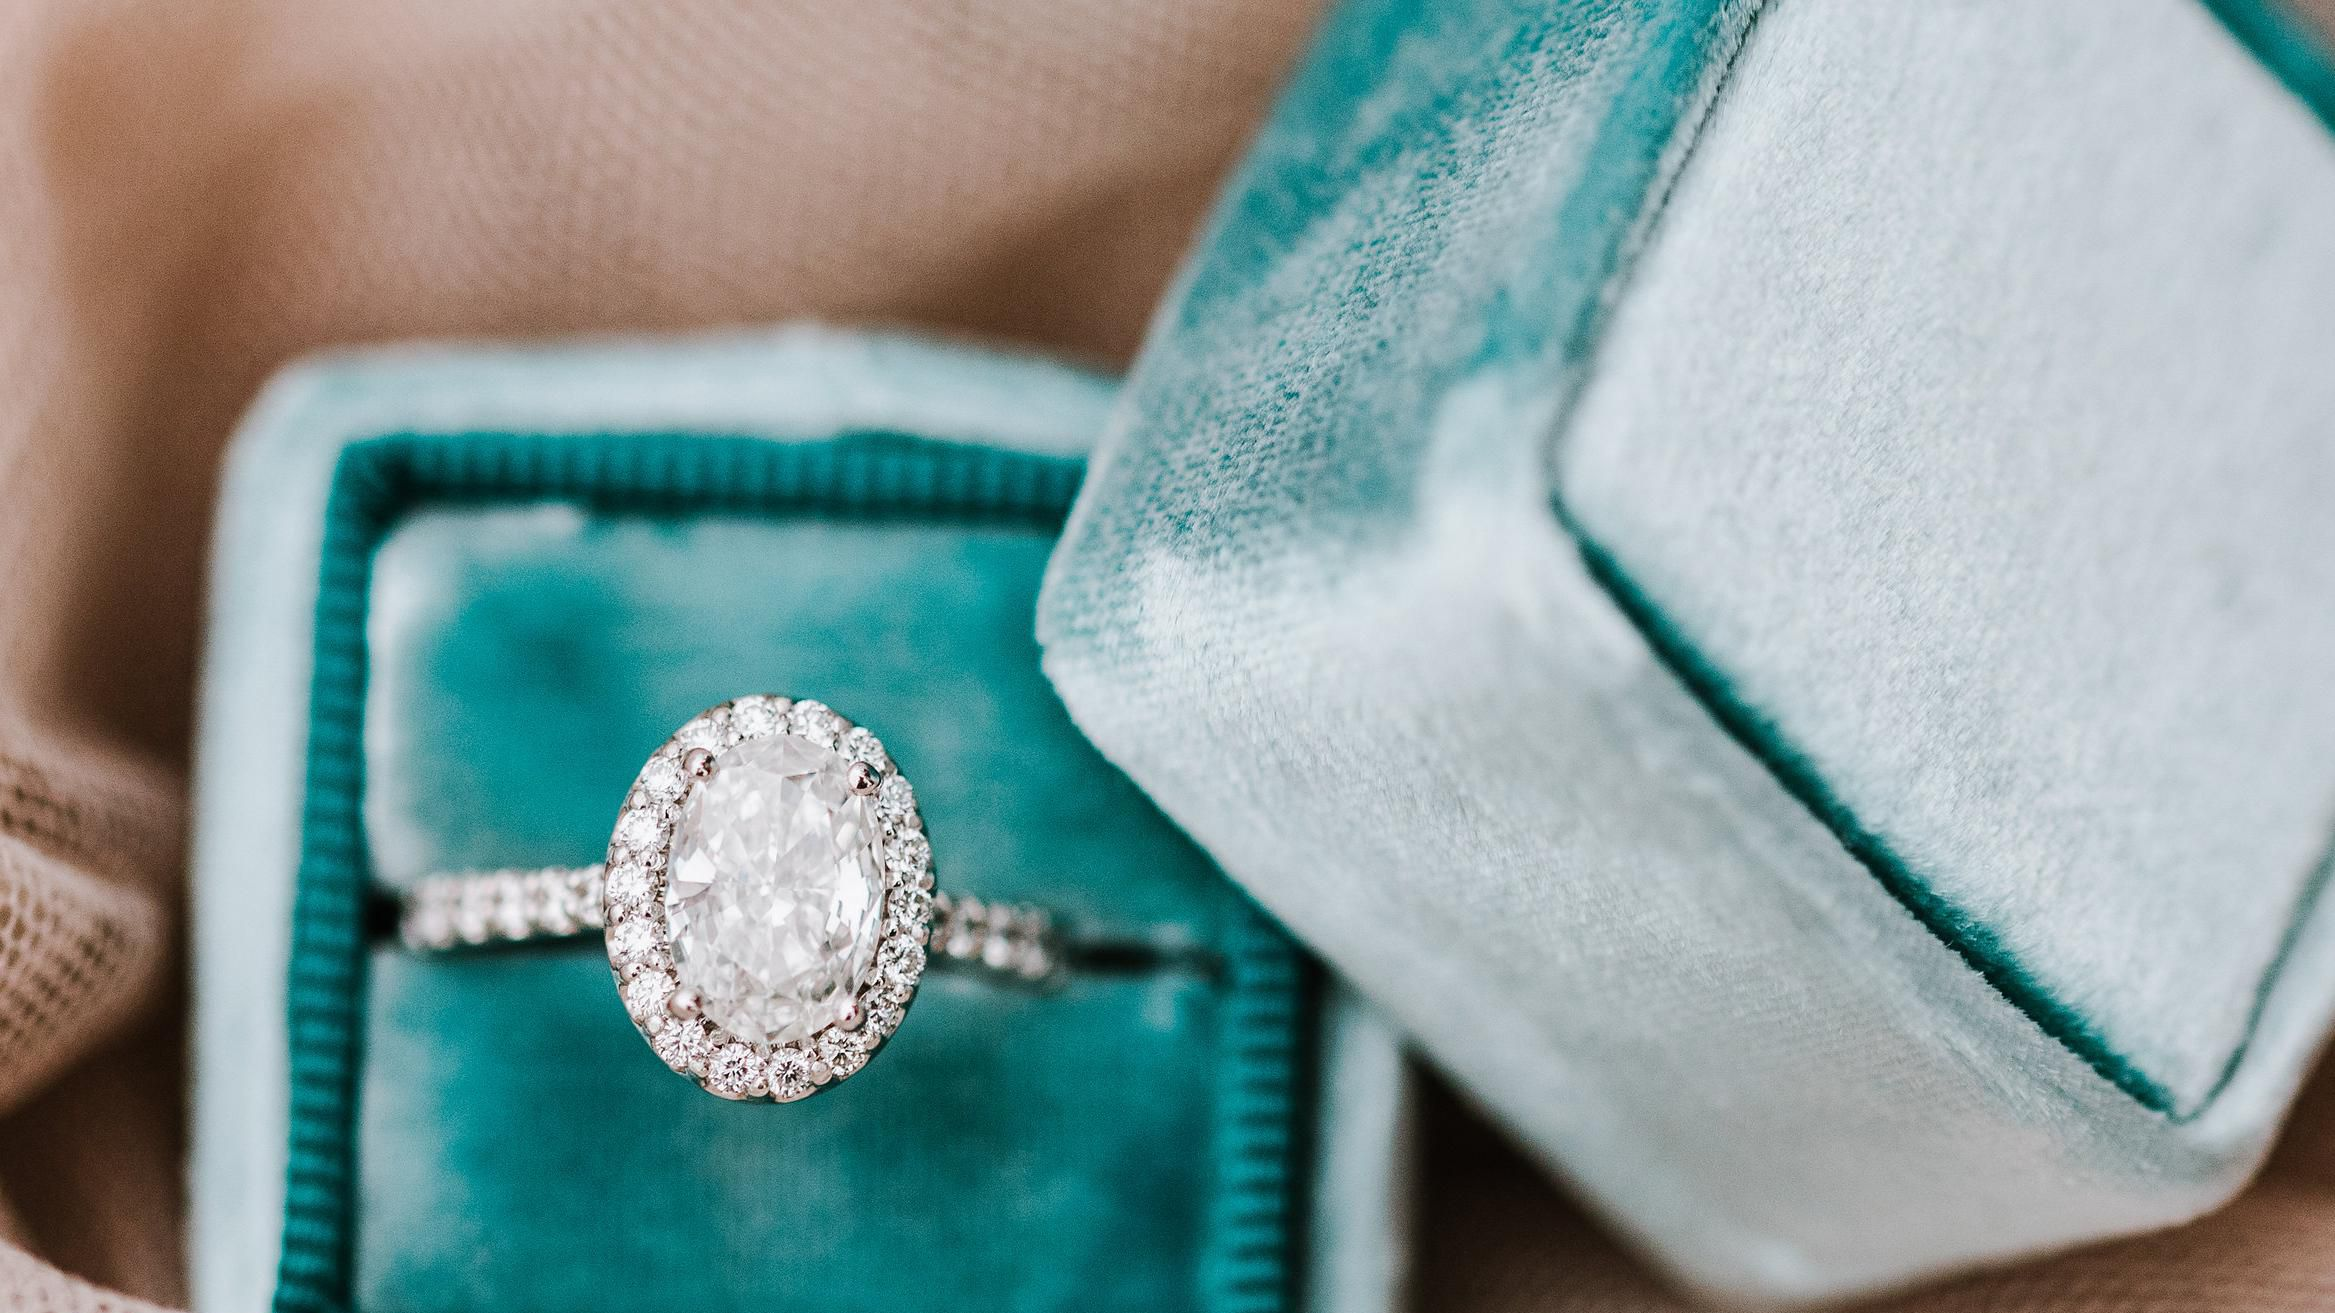 Should You Sleep With Your Engagement Ring On